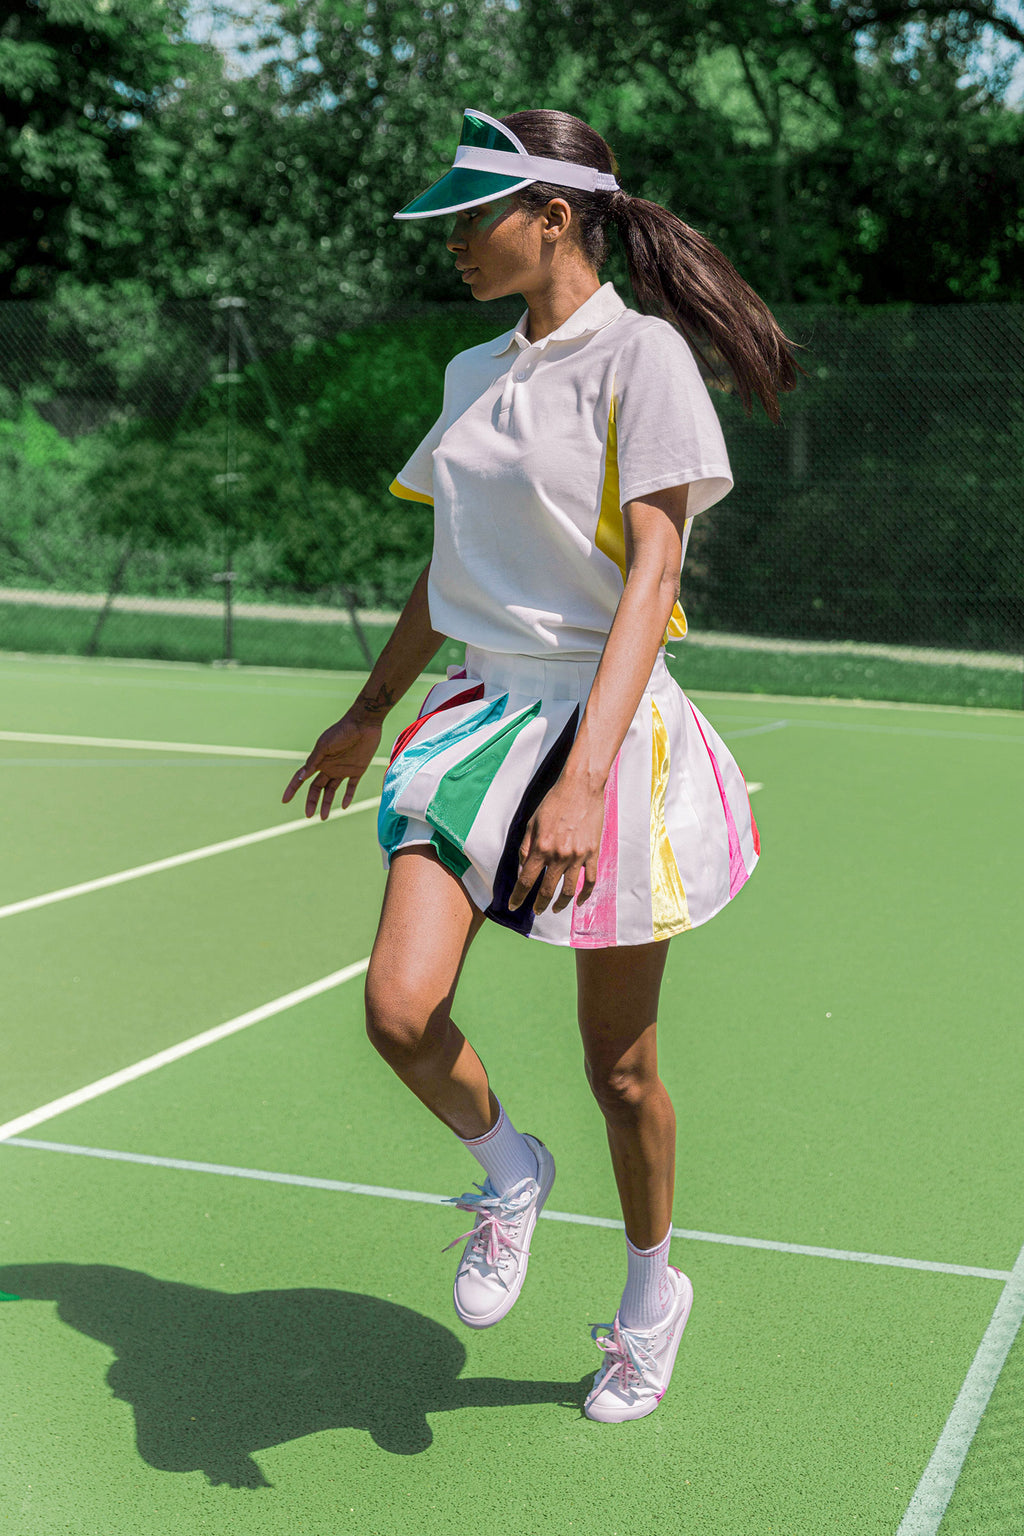 Rainbow Pleat Tennis Skirt